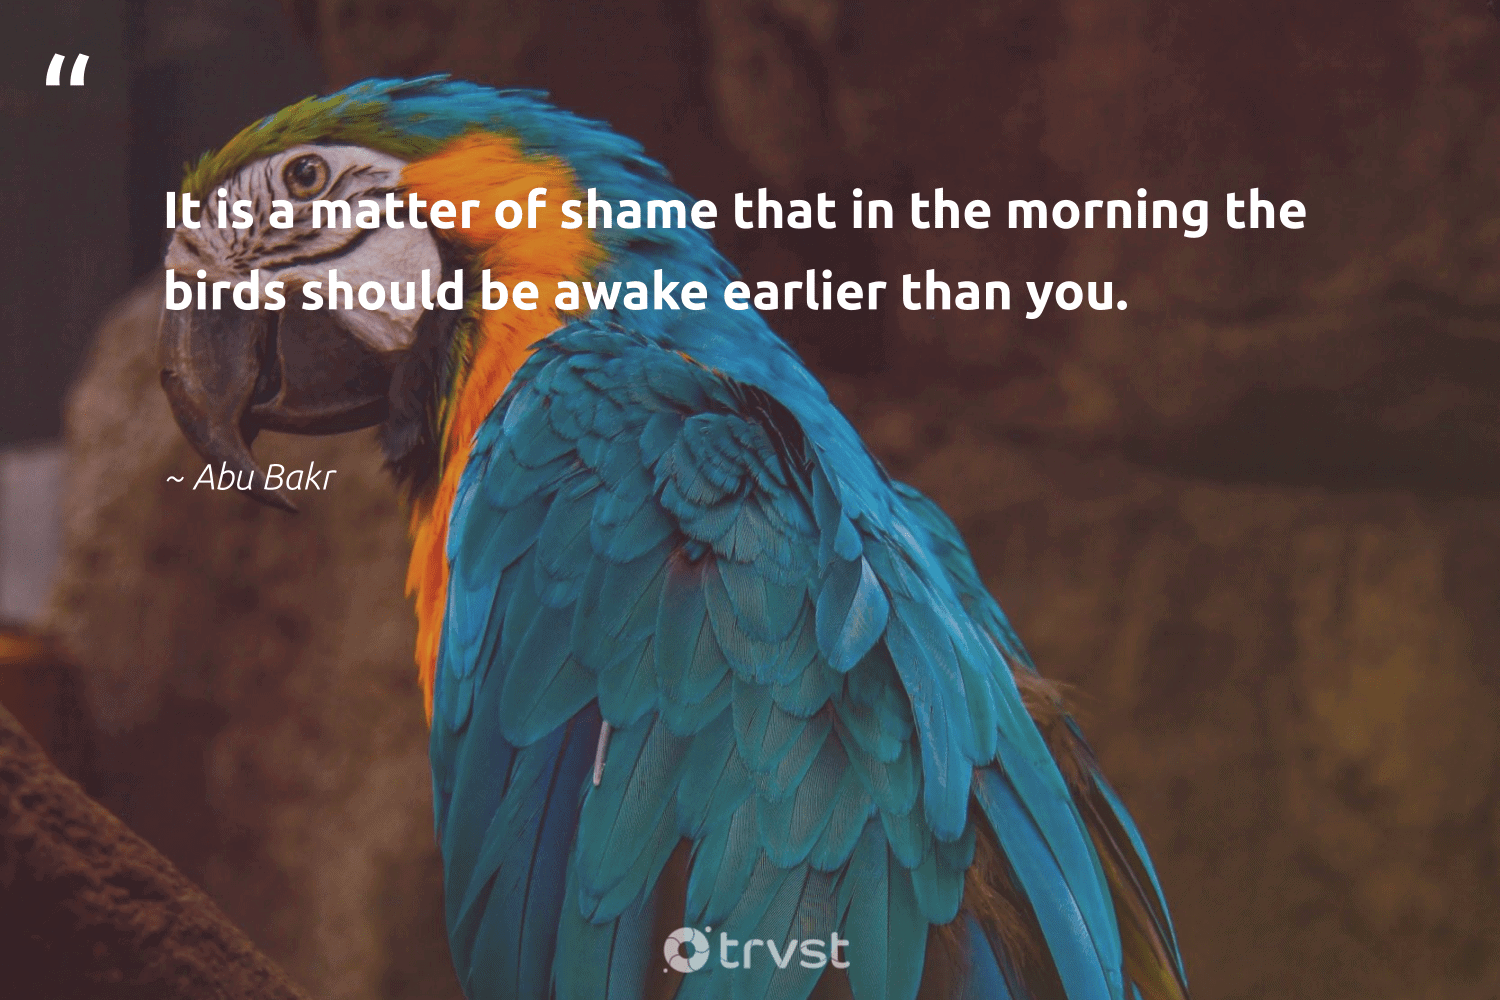 """""""It is a matter of shame that in the morning the birds should be awake earlier than you.""""  - Abu Bakr #trvst #quotes #birds #bird #biology #gogreen #natural #impact #nature #thinkgreen #forscience #socialimpact"""